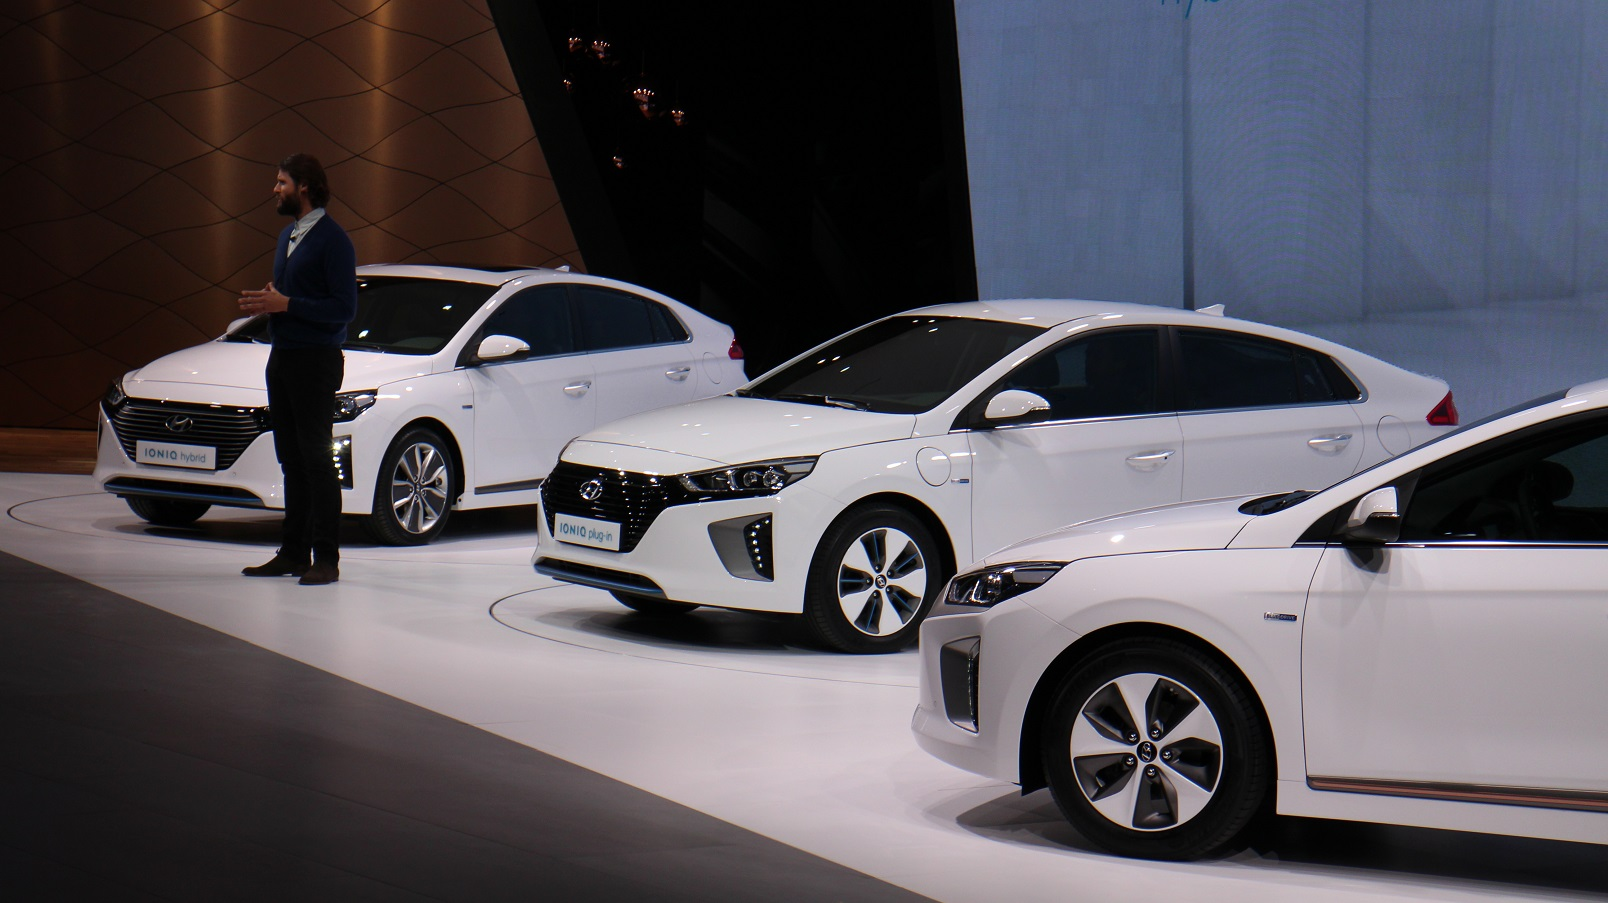 Hyundai Ioniq Most Important Car At The Geneva Motor Show - Hyundai car show